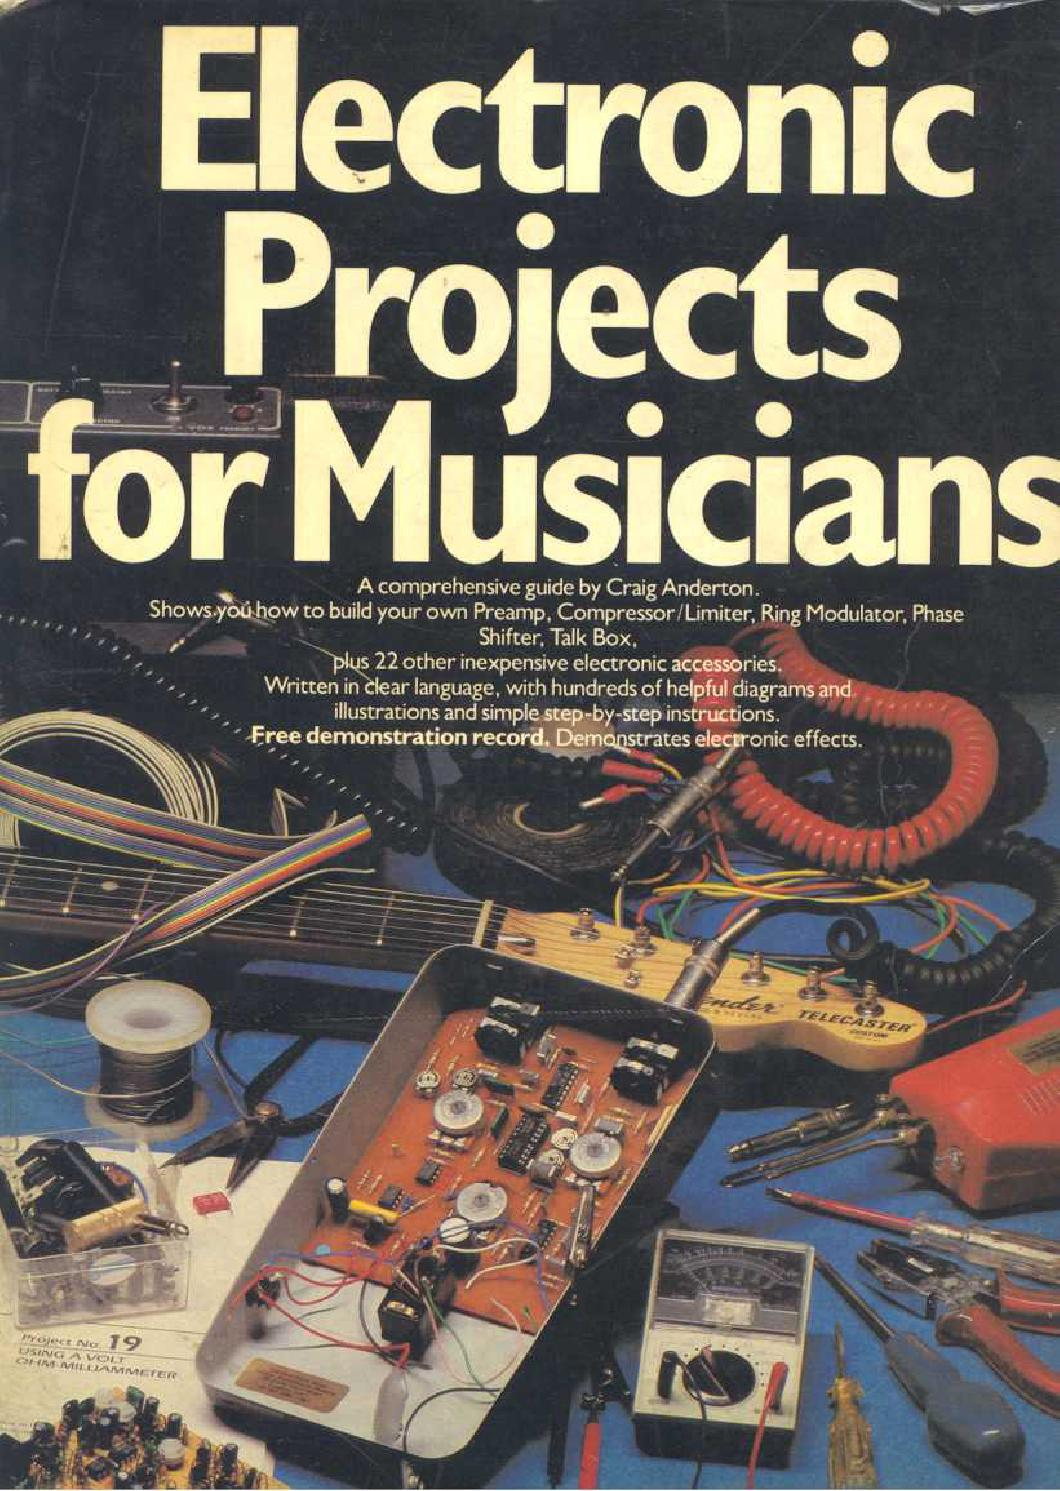 Electronic Projects For Musicians Craig Anderton By Alan Rab Issuu Fridge Door Alarm Circuit P Marian Alarms Photoresistors